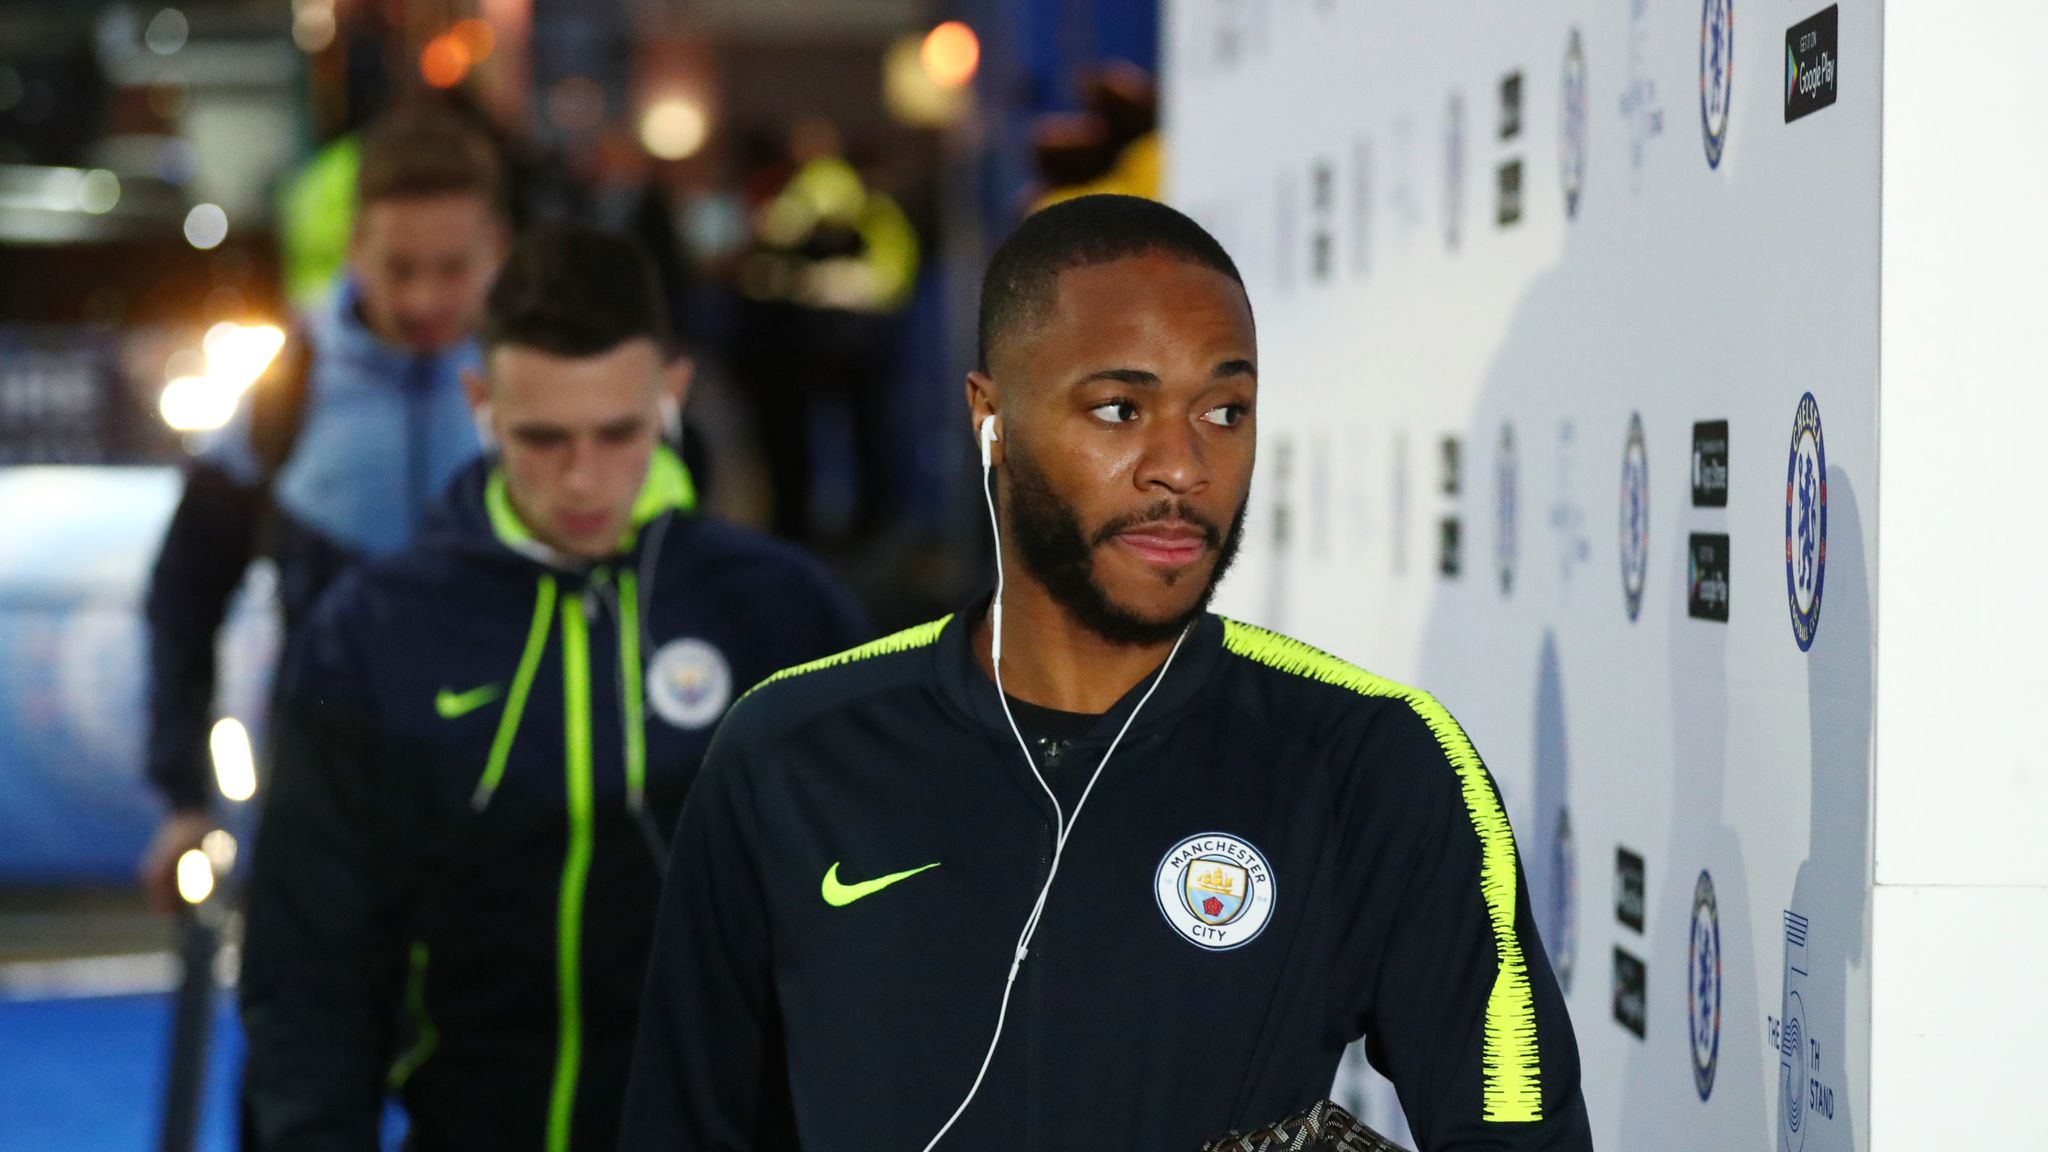 Raheem Sterling Instagram Post Was Watershed Moment For Football Says Darren Lewis Football News Sky Sports